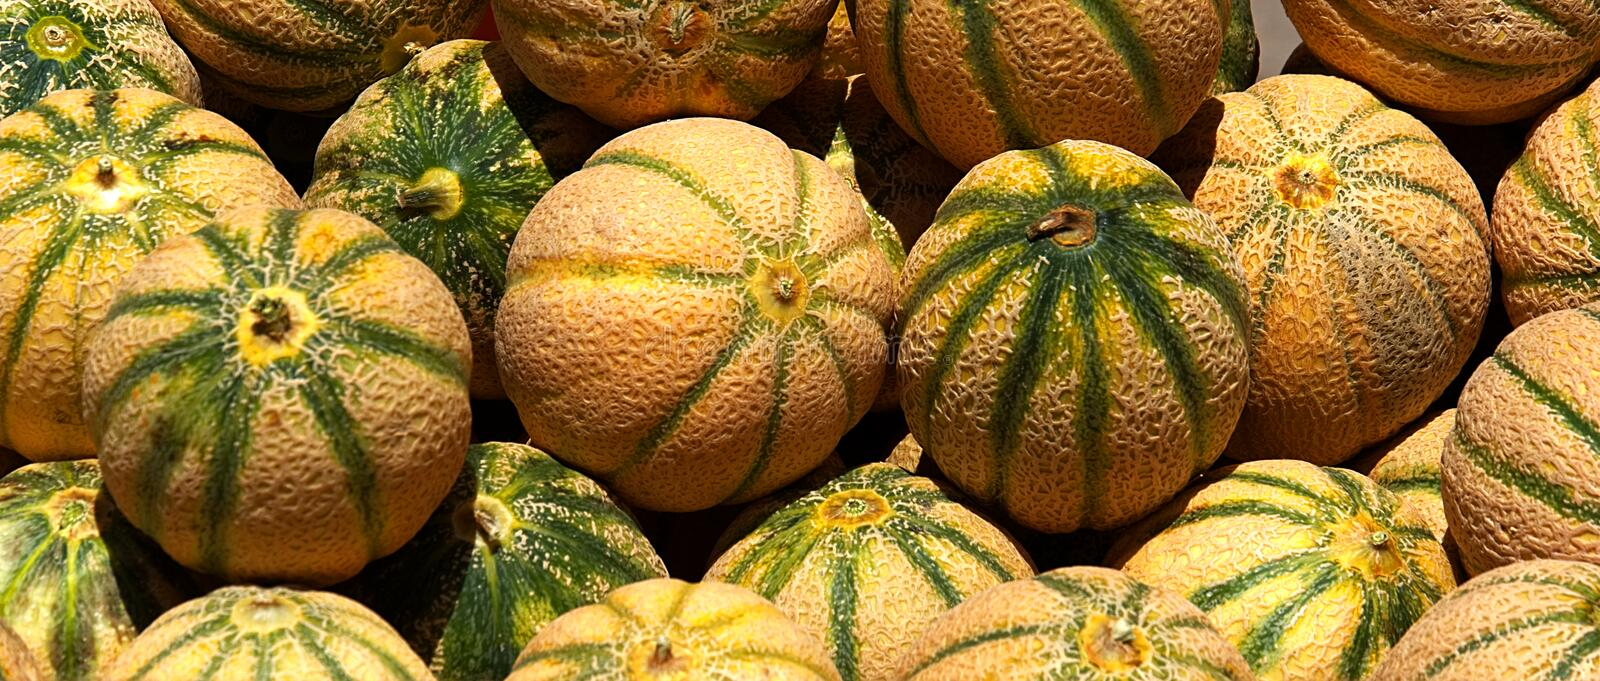 Melons 7795 images stock